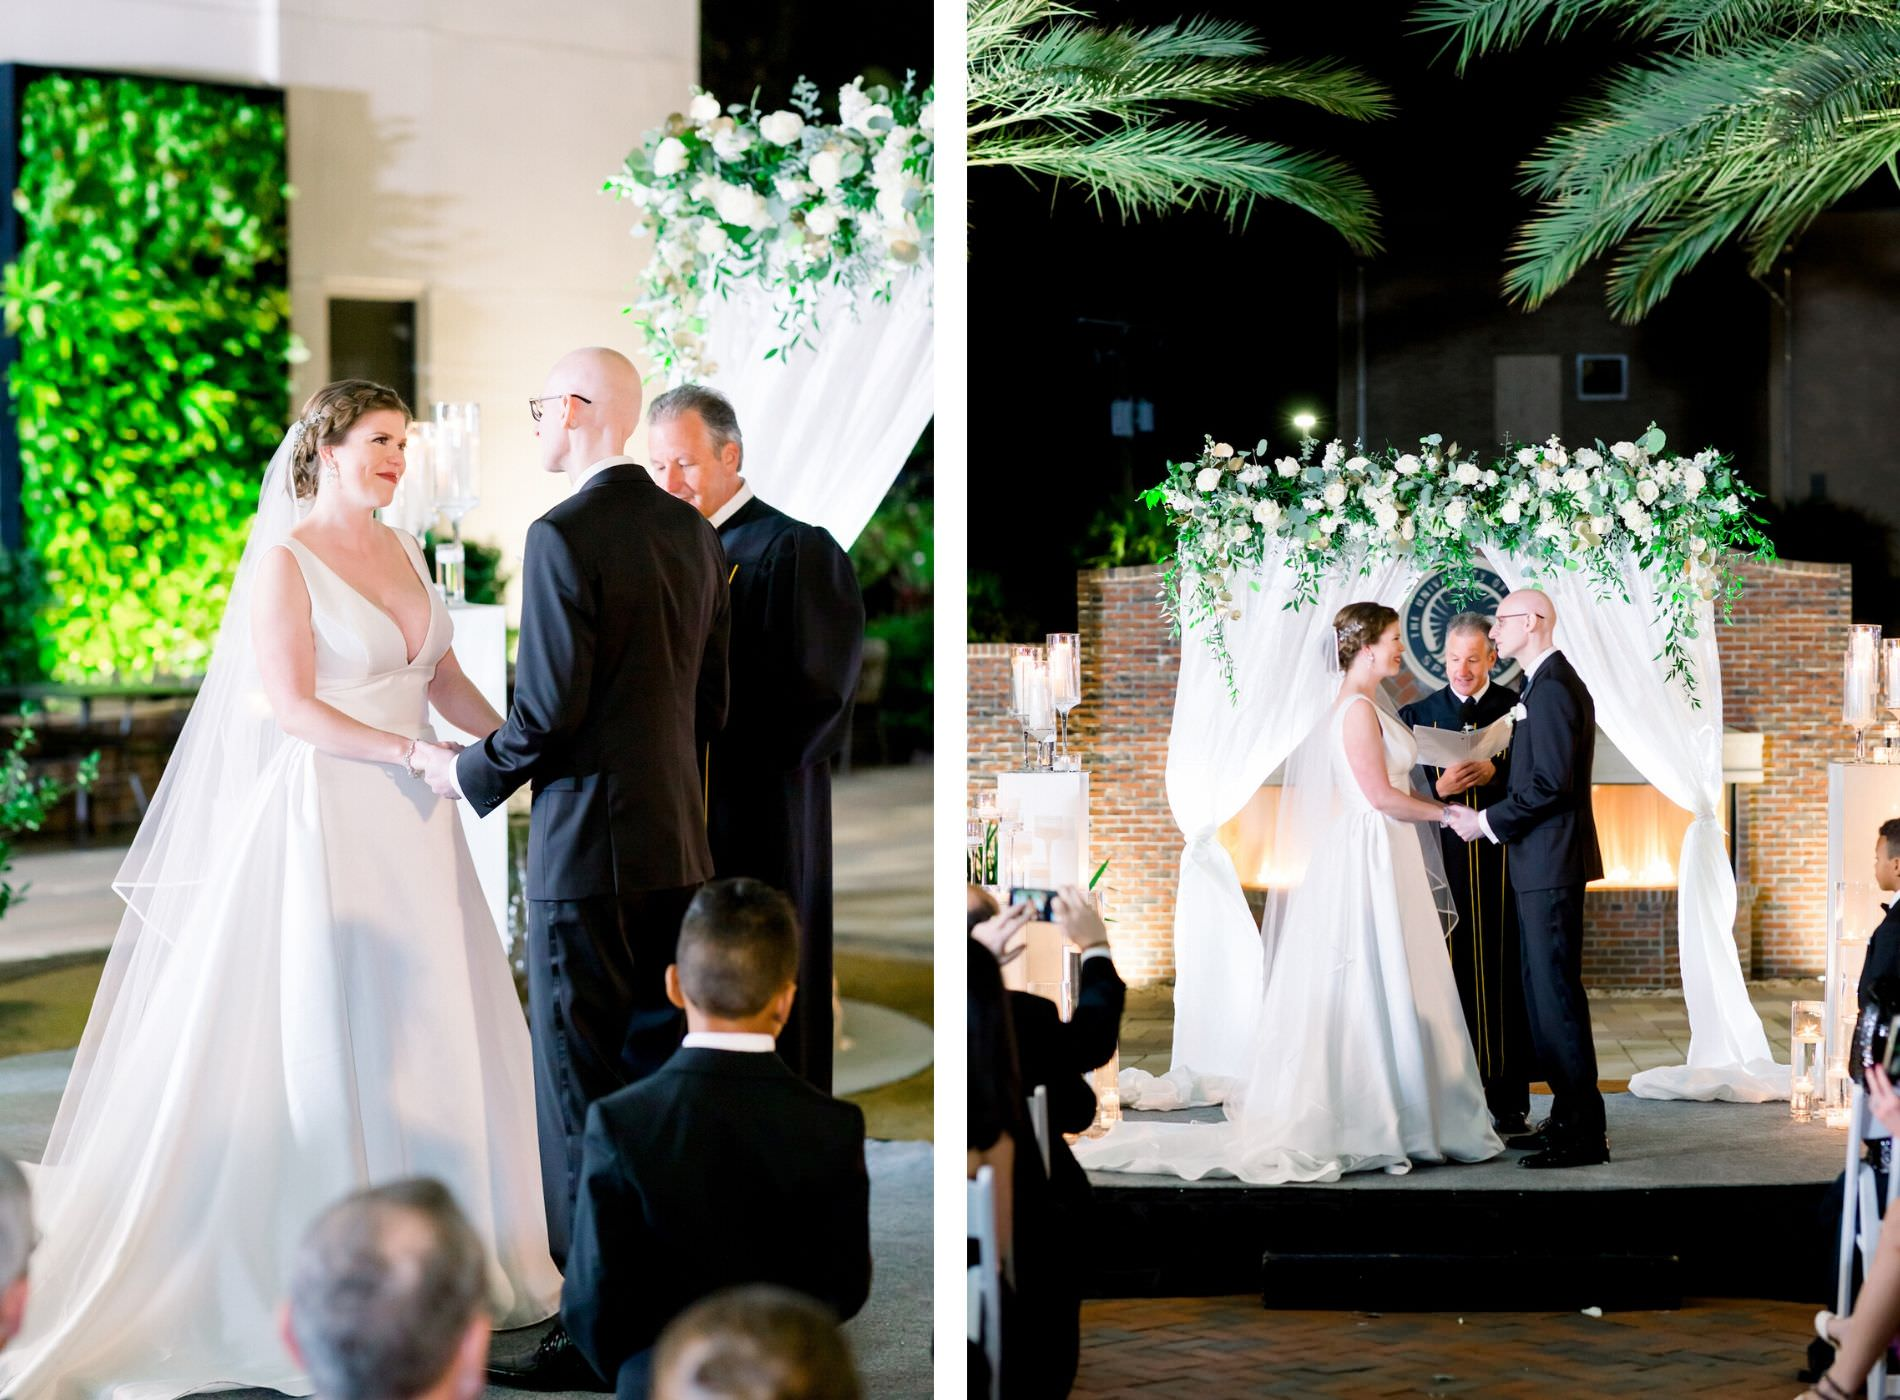 New Year's Eve Elegant Classic Nighttime Wedding Ceremony, Bride and Groom Exchanging Vows, White Draped Arch with Greenery and White Floral Arrangement, Red Brick Fireplace Backdrop | Wedding Photographer Shauna and Jordon Photography | Tampa Wedding Planner UNIQUE Weddings + Events